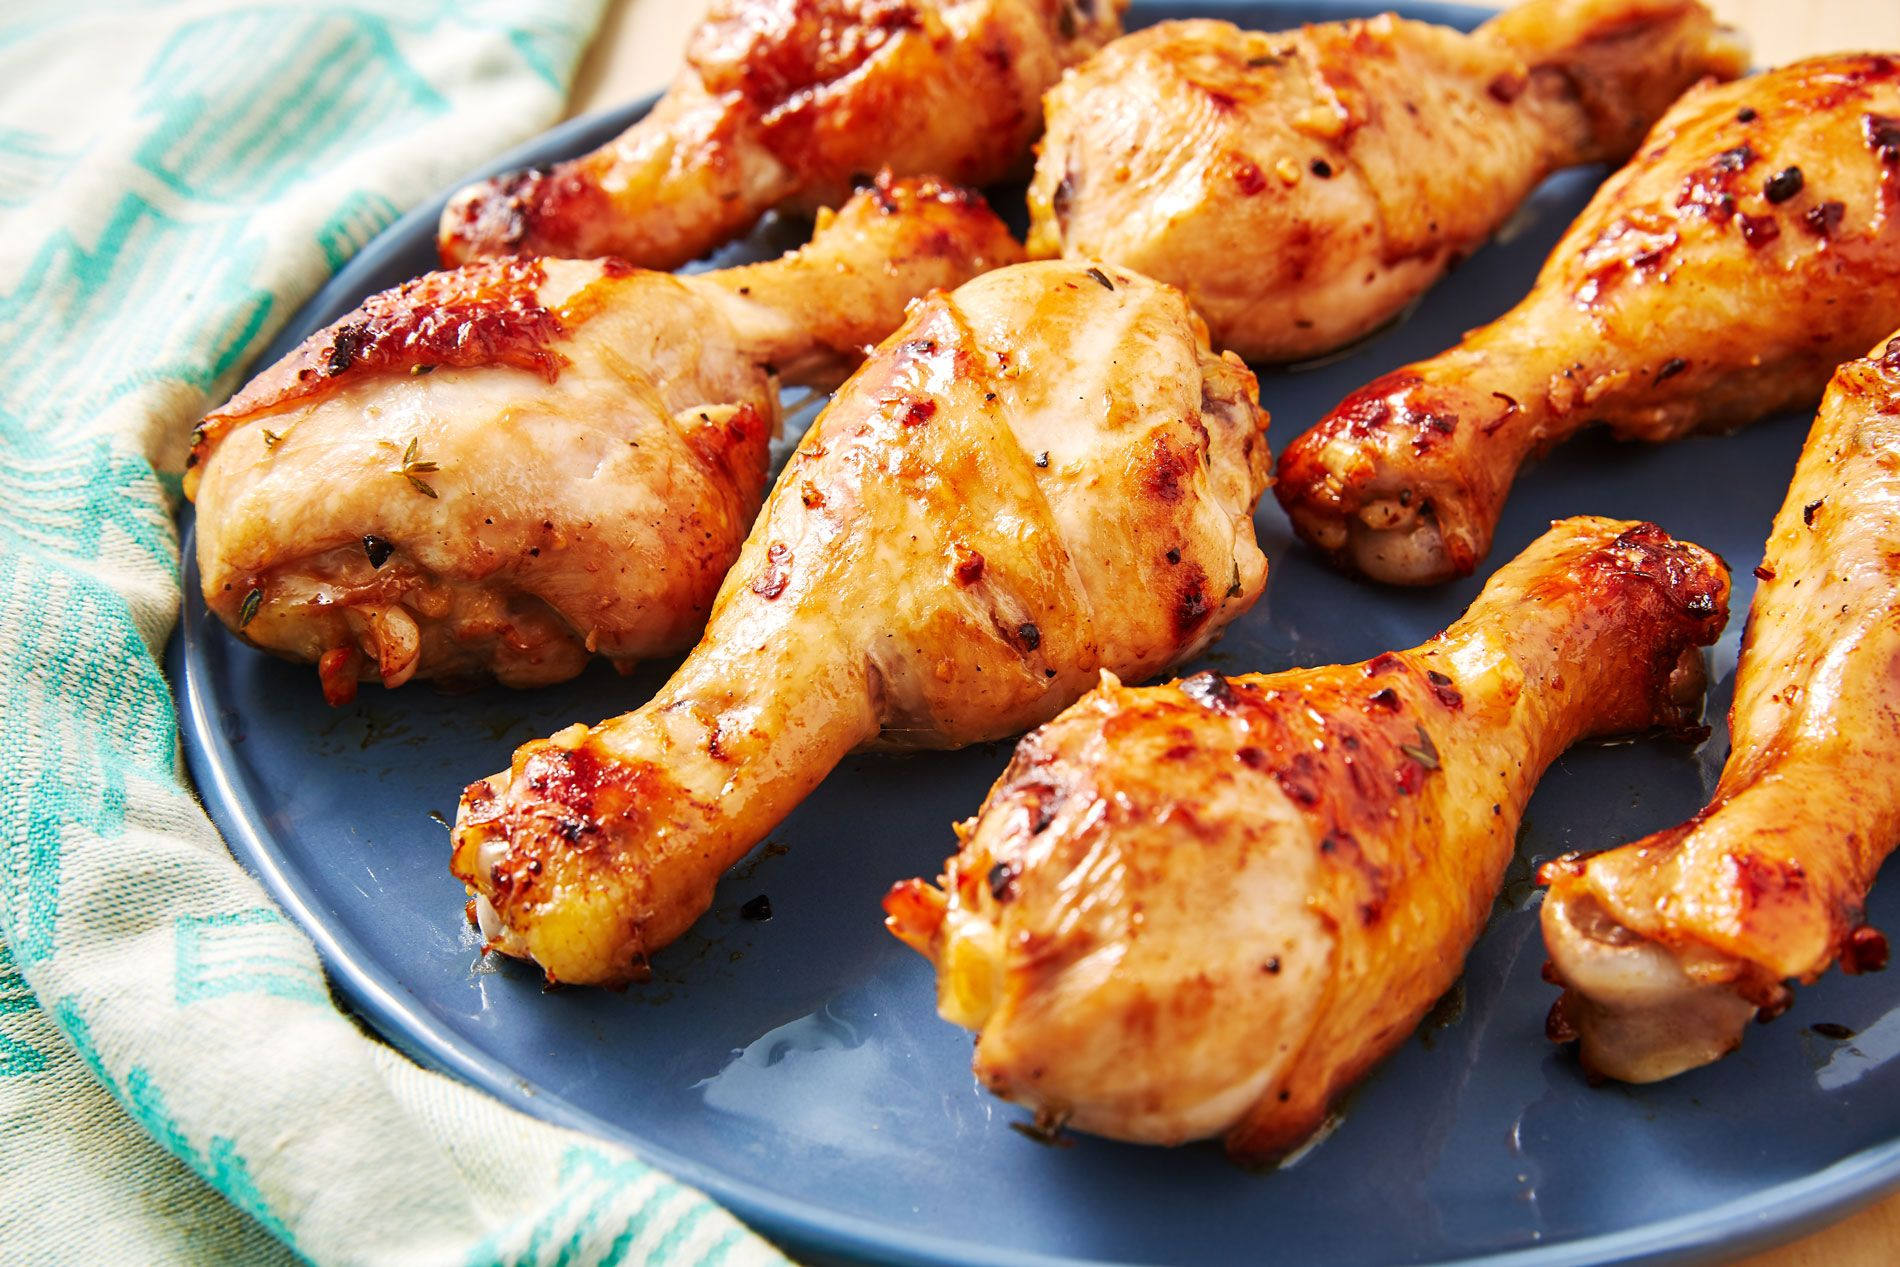 Easy Baked Chicken Drumsticks Recipe - How to Cook Drumsticks In The Oven